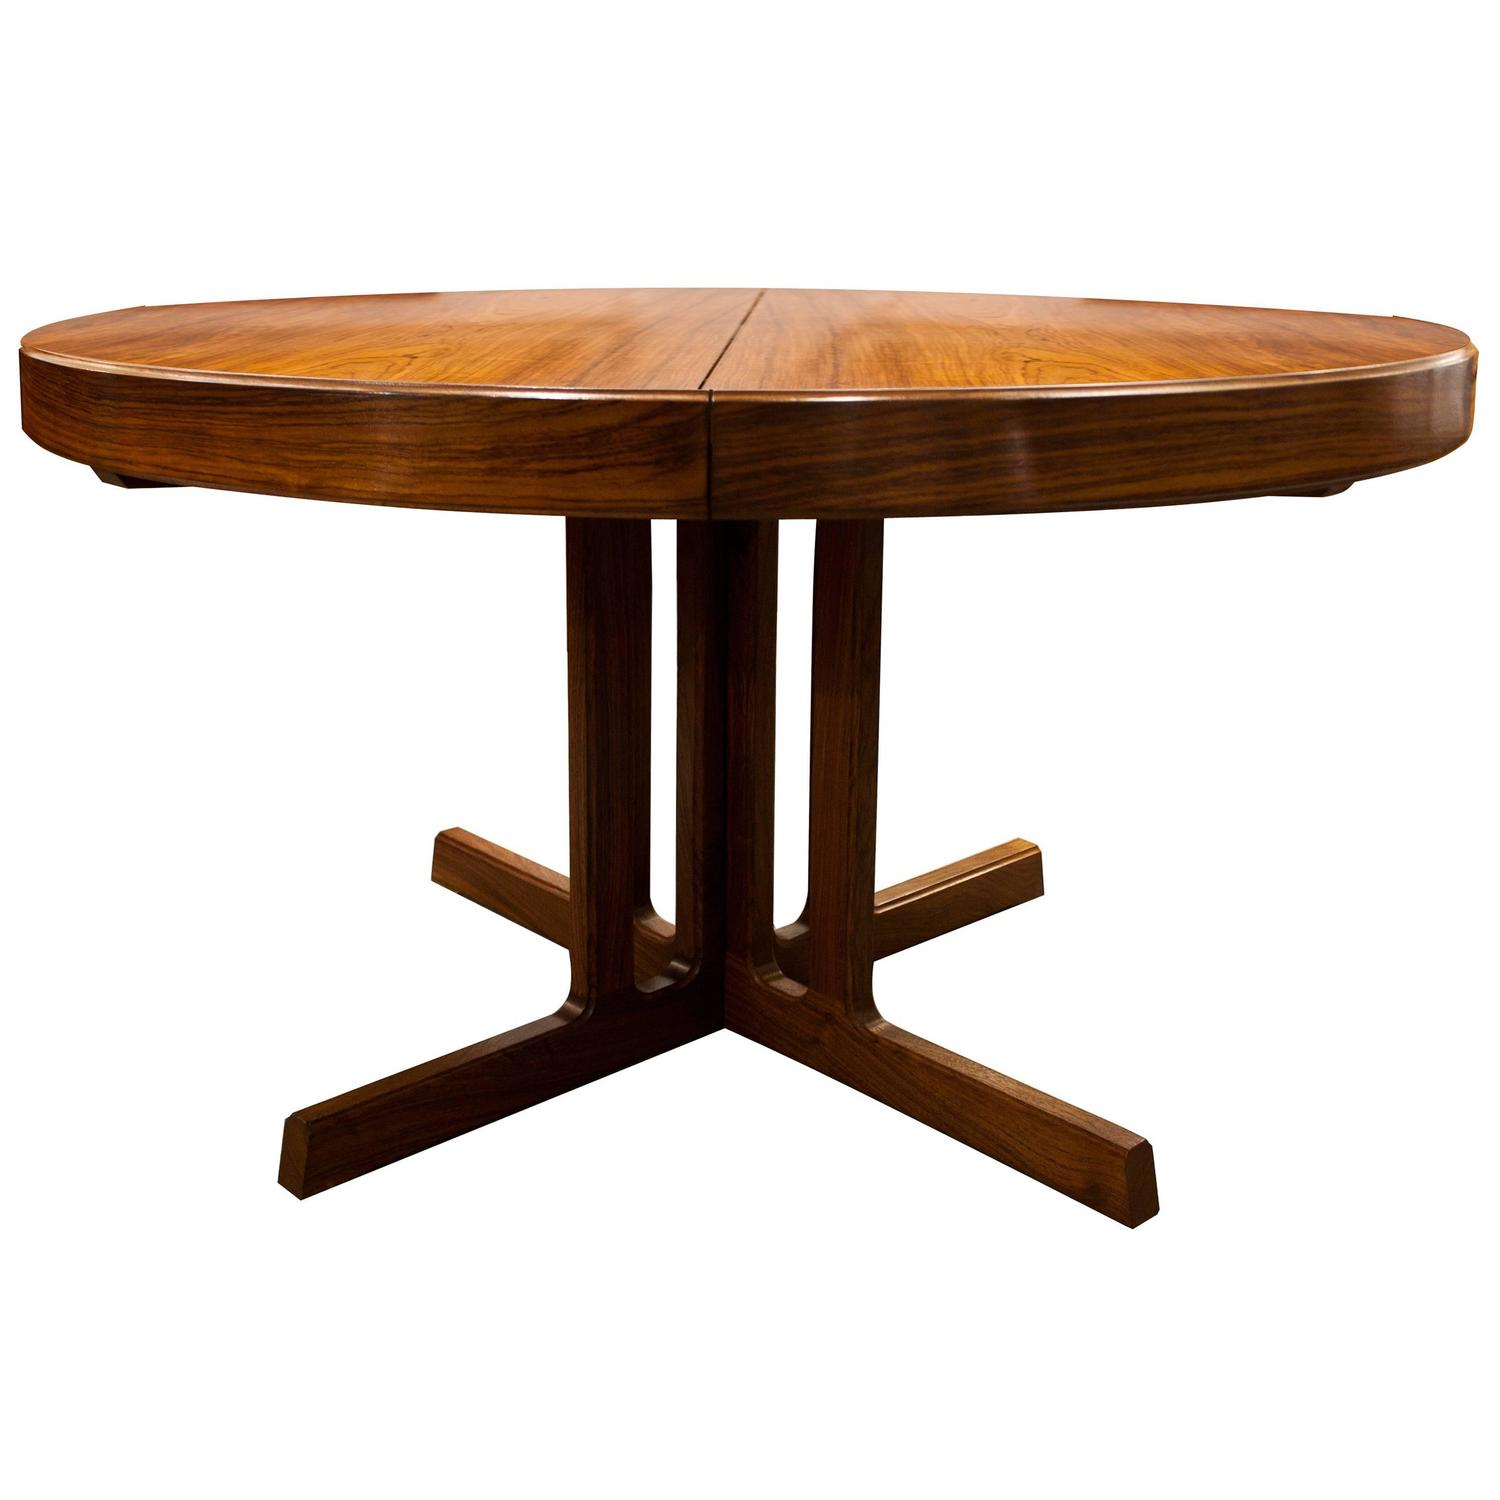 Mid century modern design rosewood dining table at 1stdibs for Mid century modern dining table